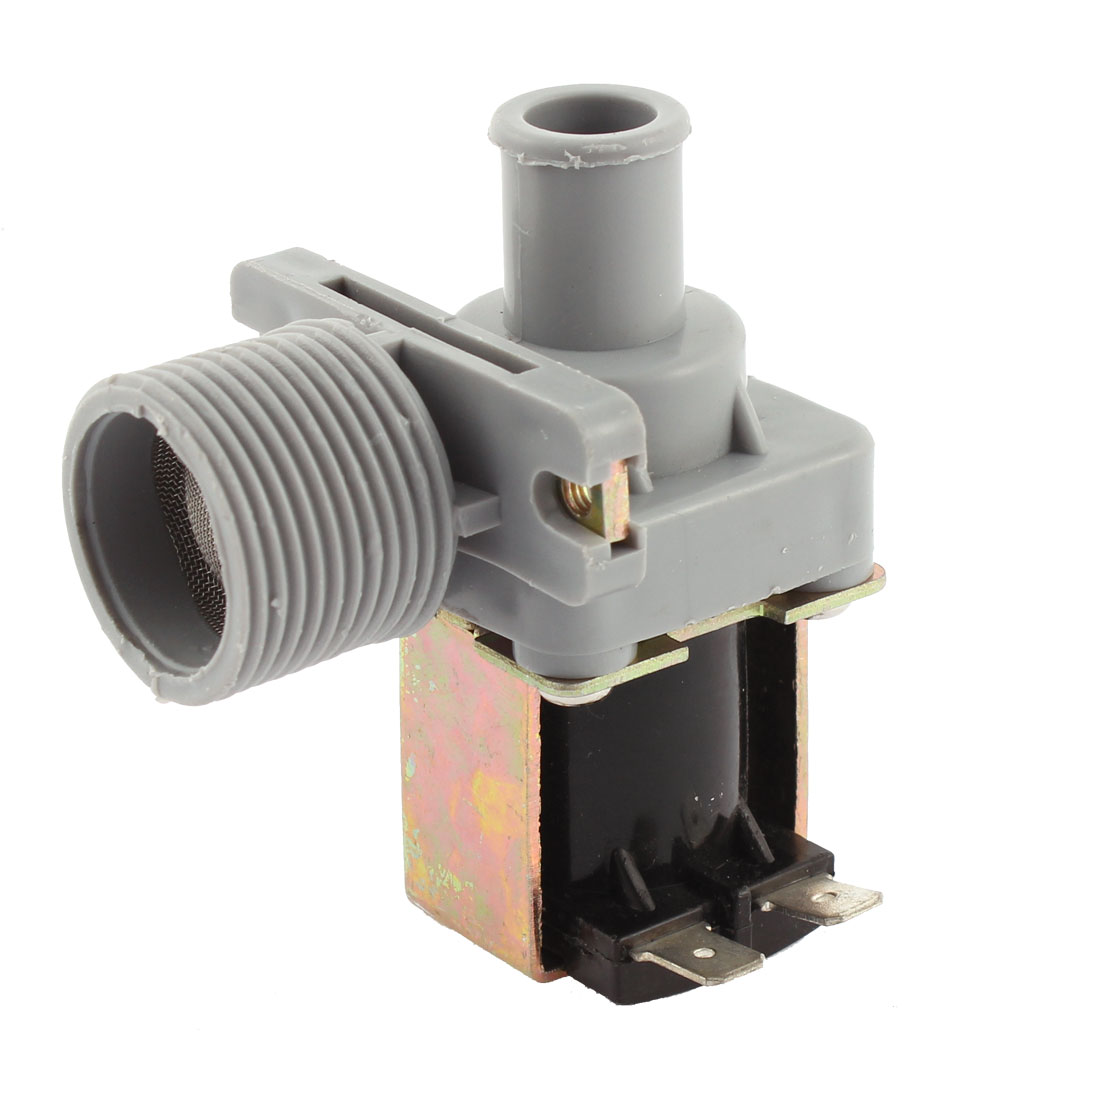 Washing Machine 3/4BSP Thread Water Inlet Solenoid Valve AC 220V 50Hz